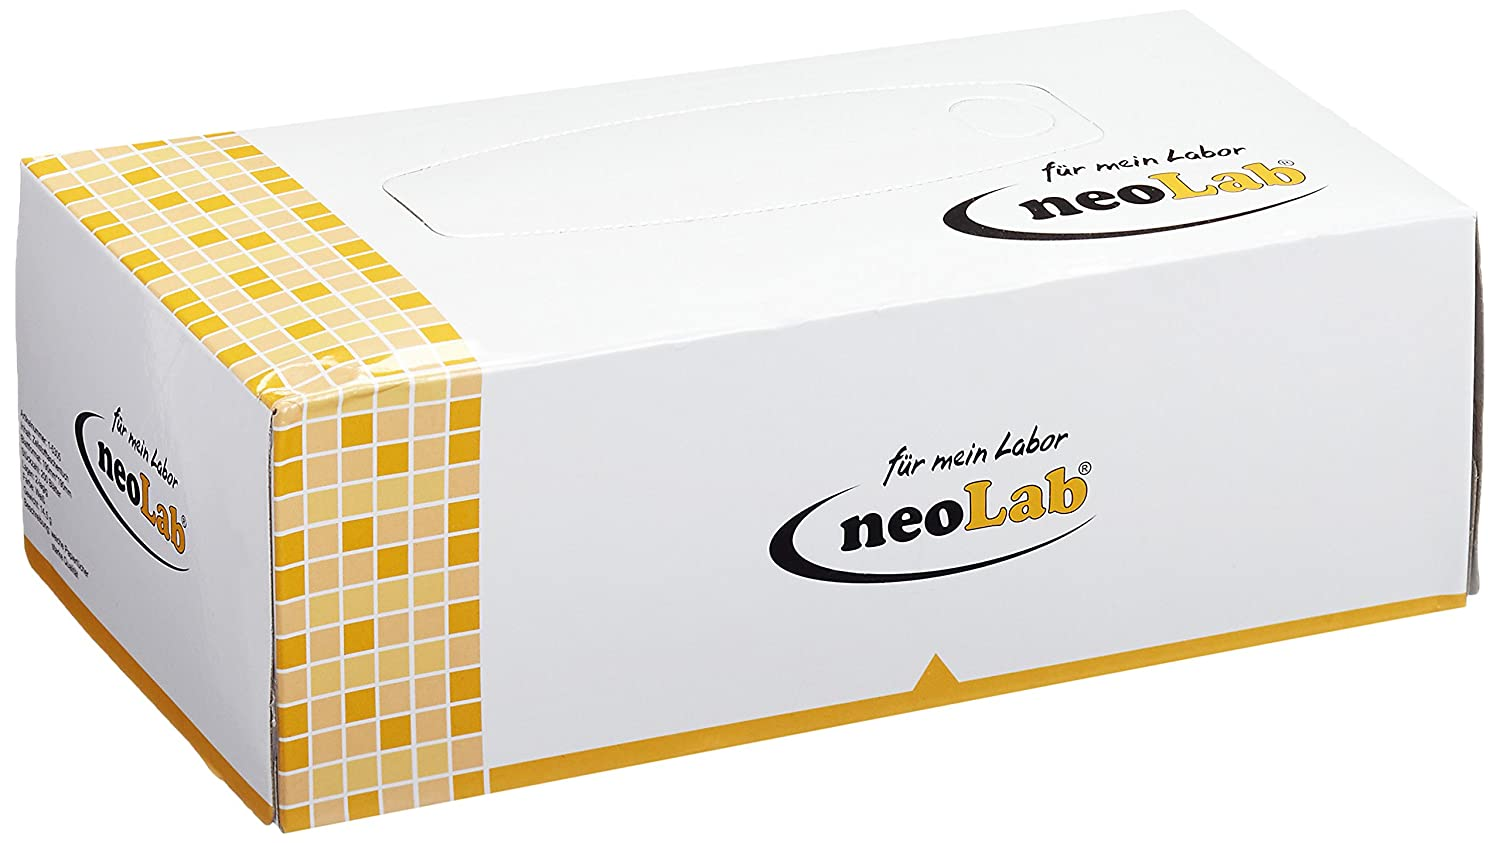 Neolab 1  5305  cellulose Lingettes (lot de 200) 1-5305